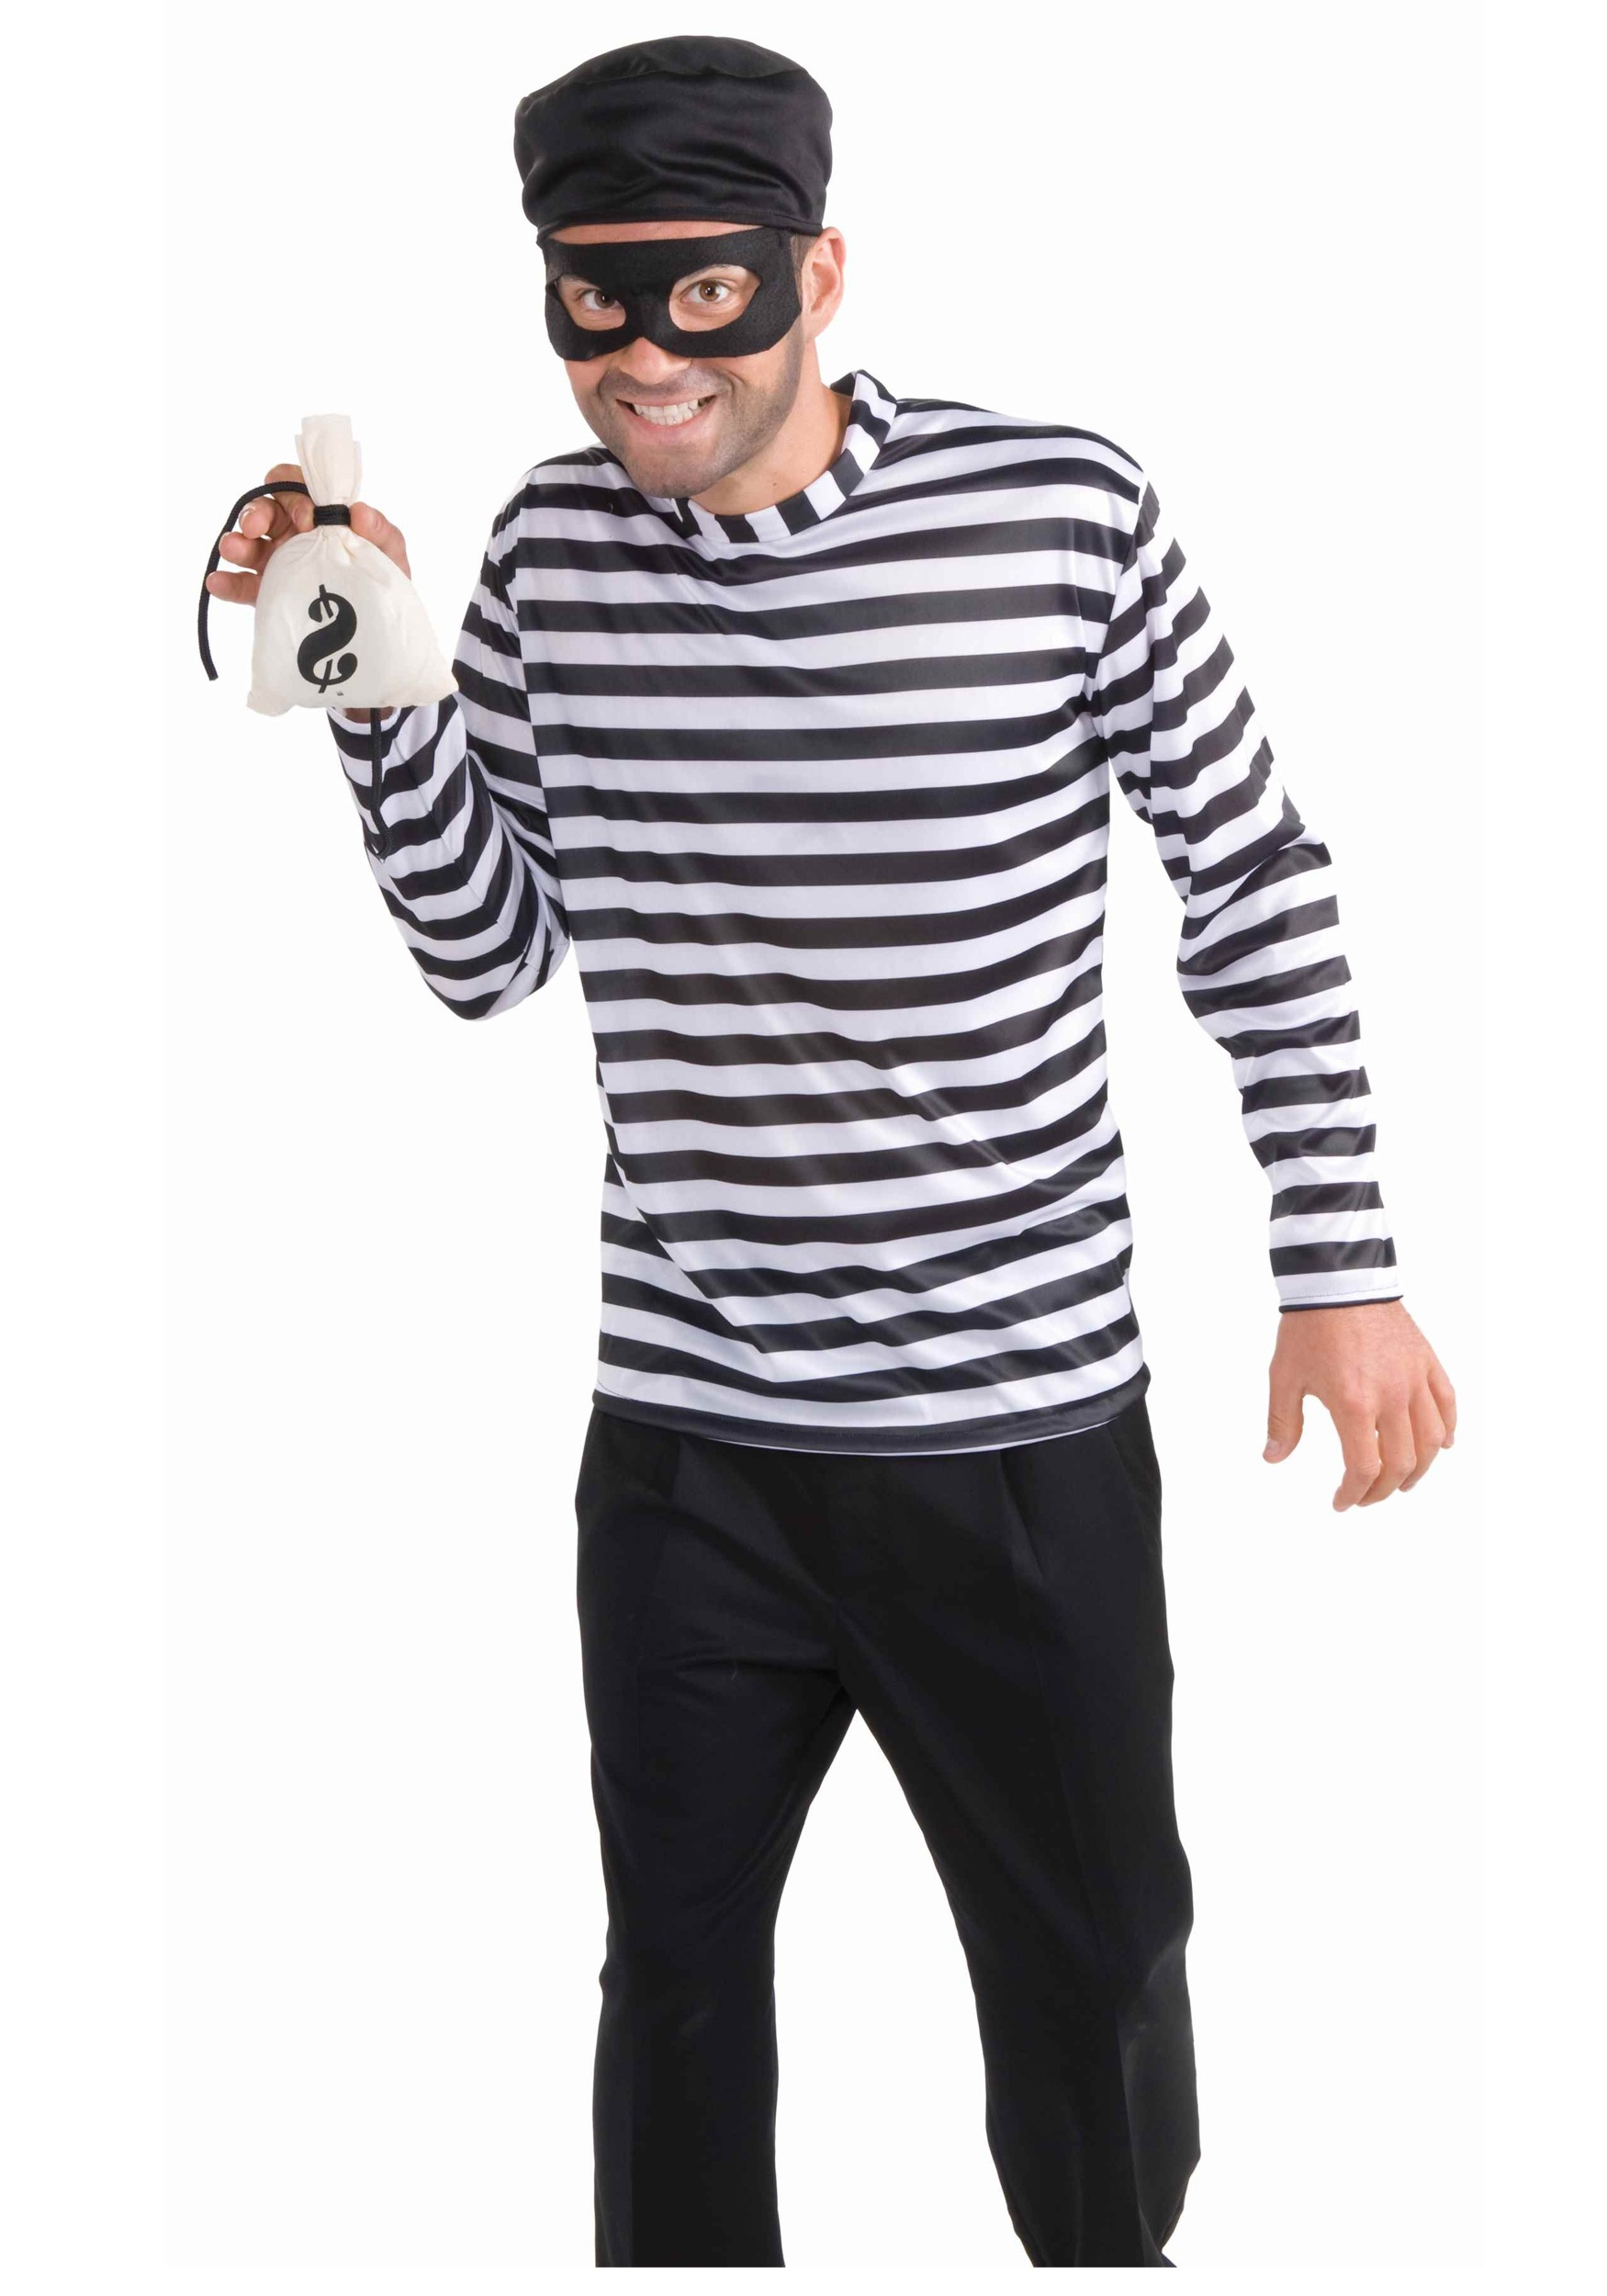 Bank Robber Costume  sc 1 st  Halloween Costume Ideas & Bank Robber Costume - Cheap Cop Costume Ideas